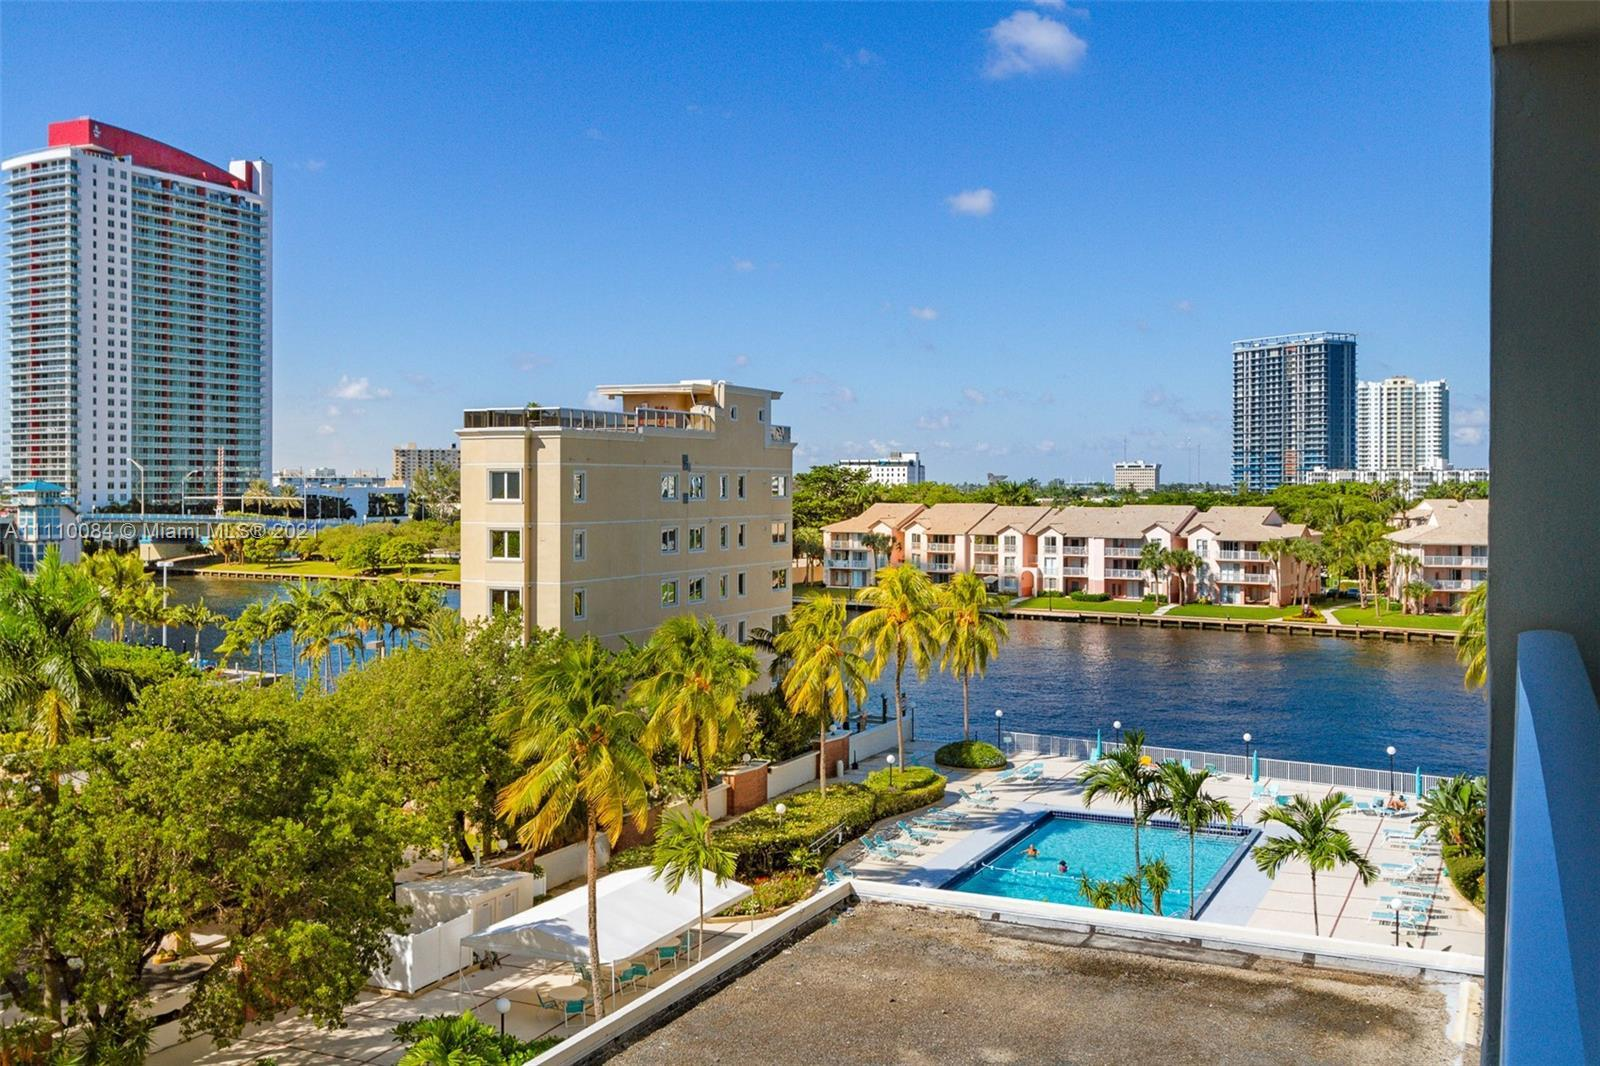 Waterfront living in the heart of Hollywood. Minutes from the beach, this residence features two bed